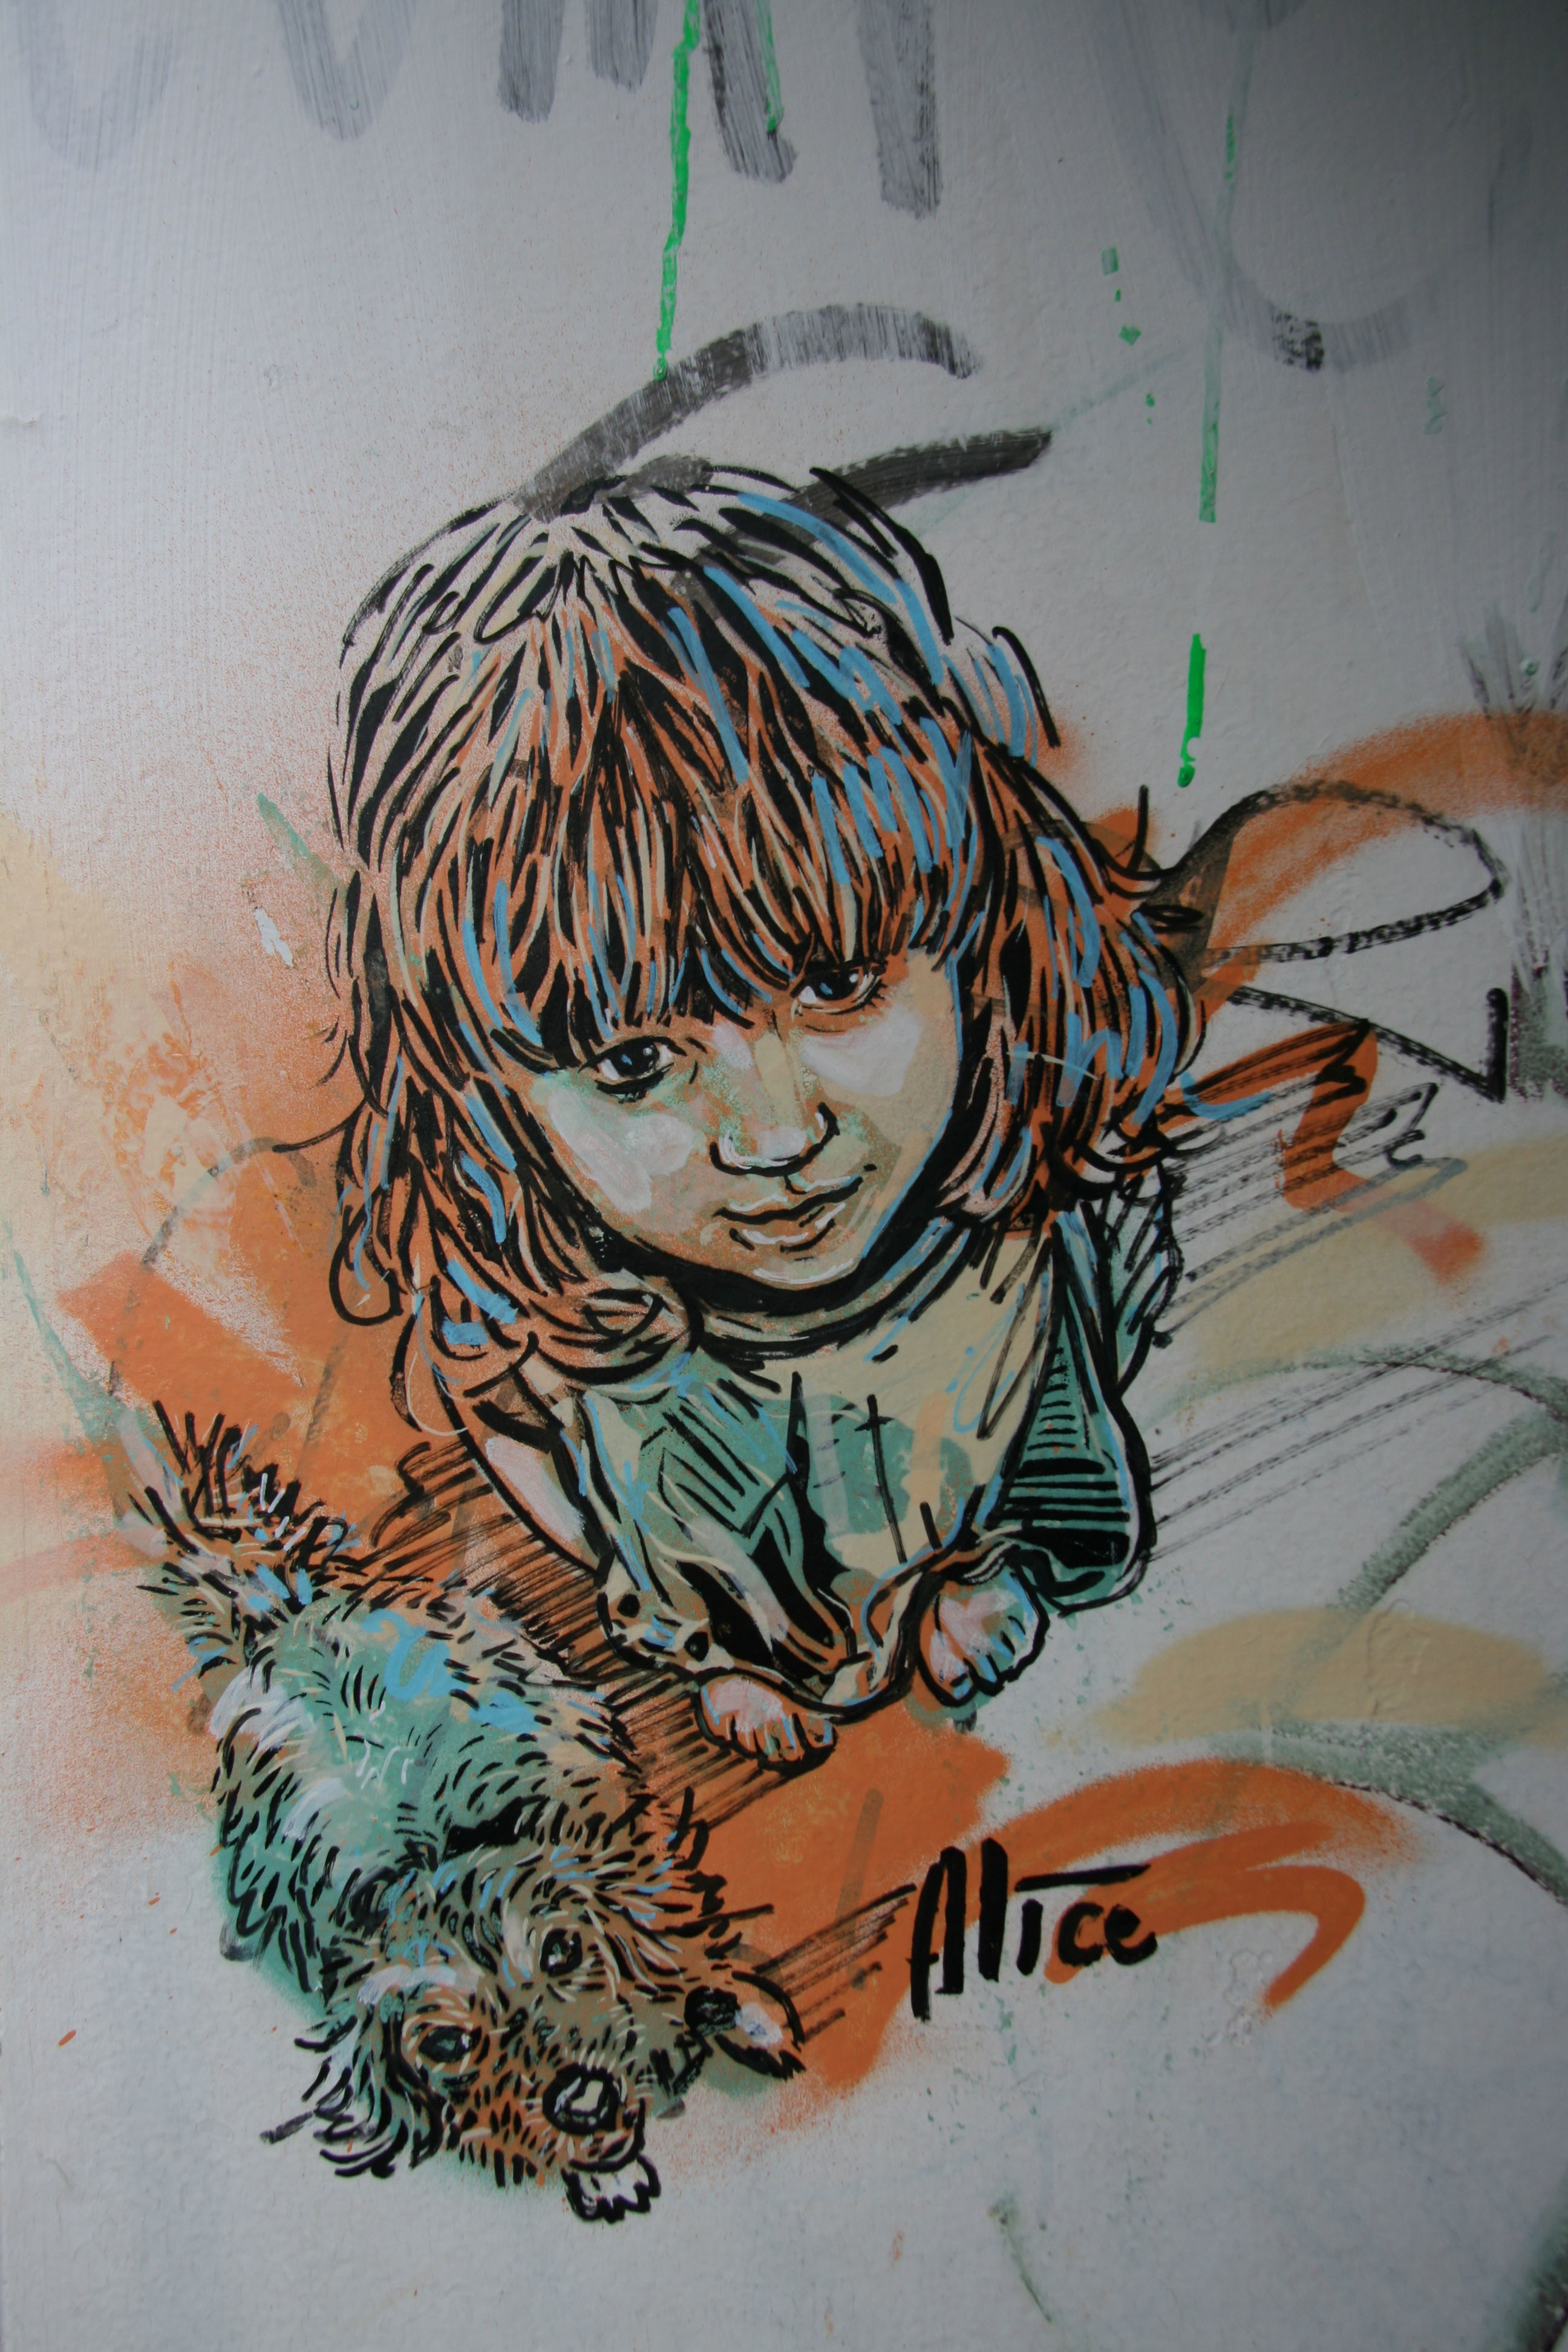 Girl and Puppy: Street Art by AliCé (Alice Pasquini) in Berlin